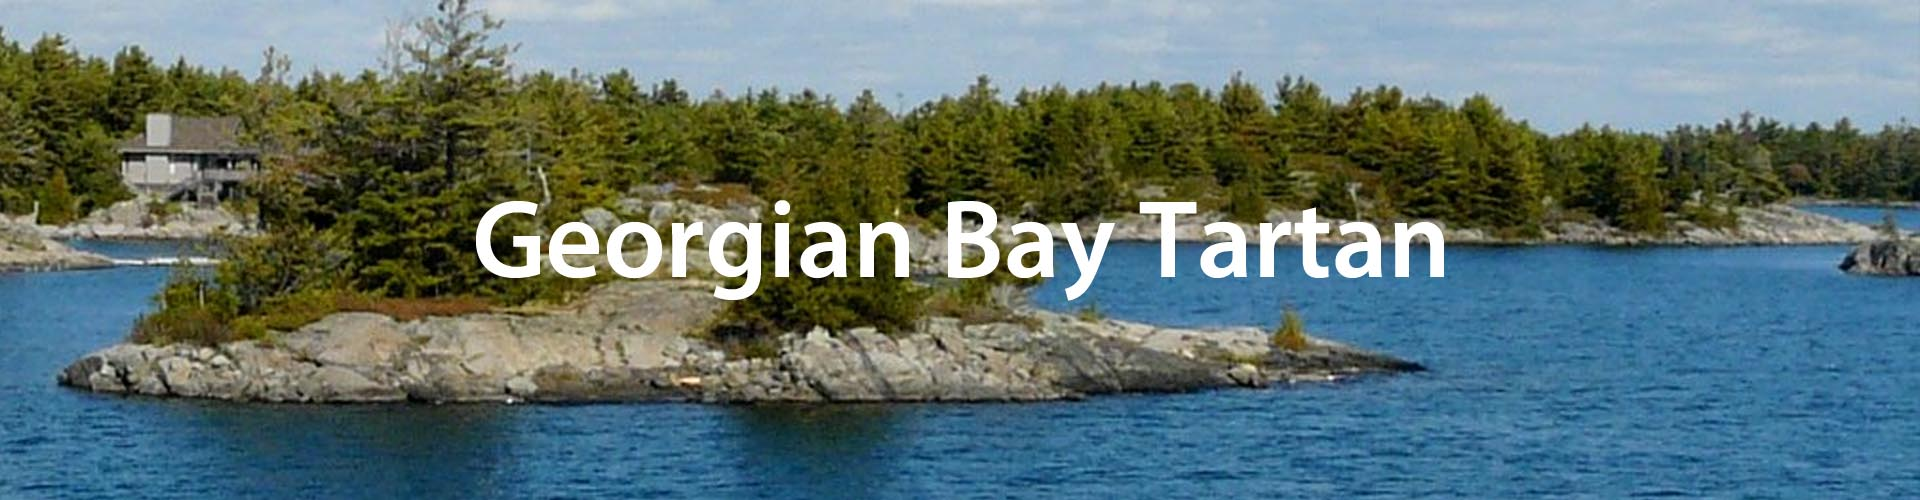 georgian-bay.jpg